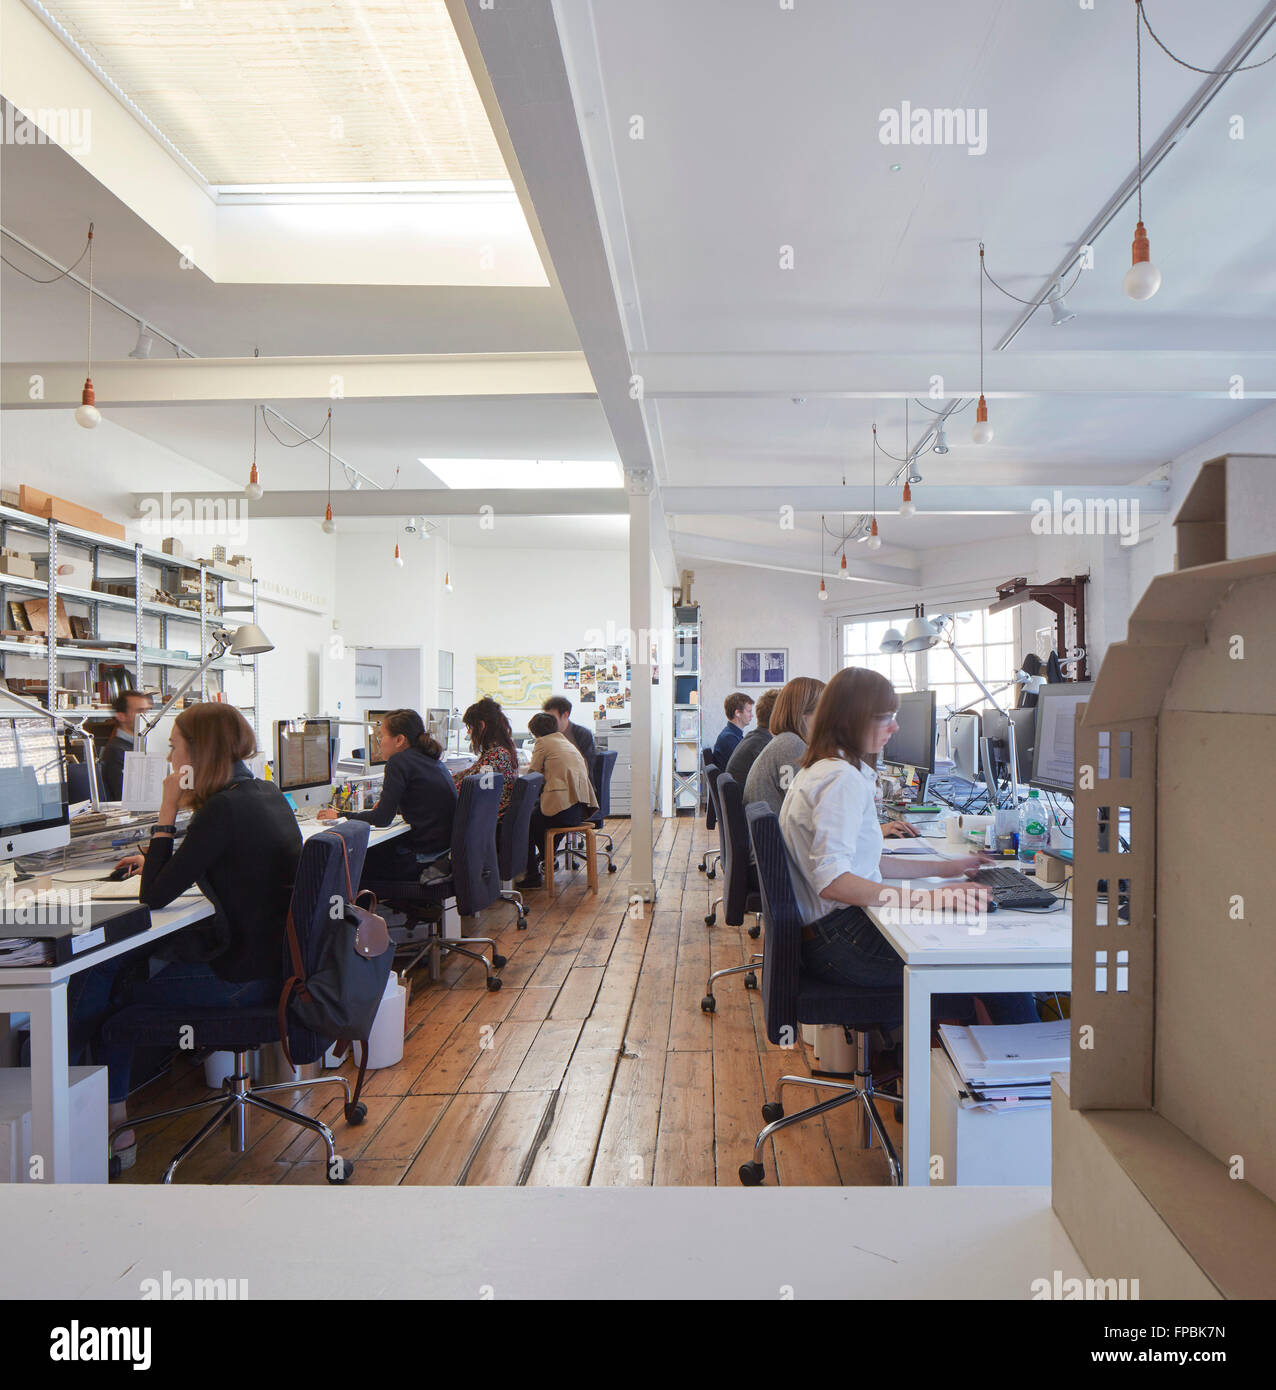 Open plan office with building model and staff at work. DSDHA architectural office, London, United Kingdom. Architect: - Stock Image